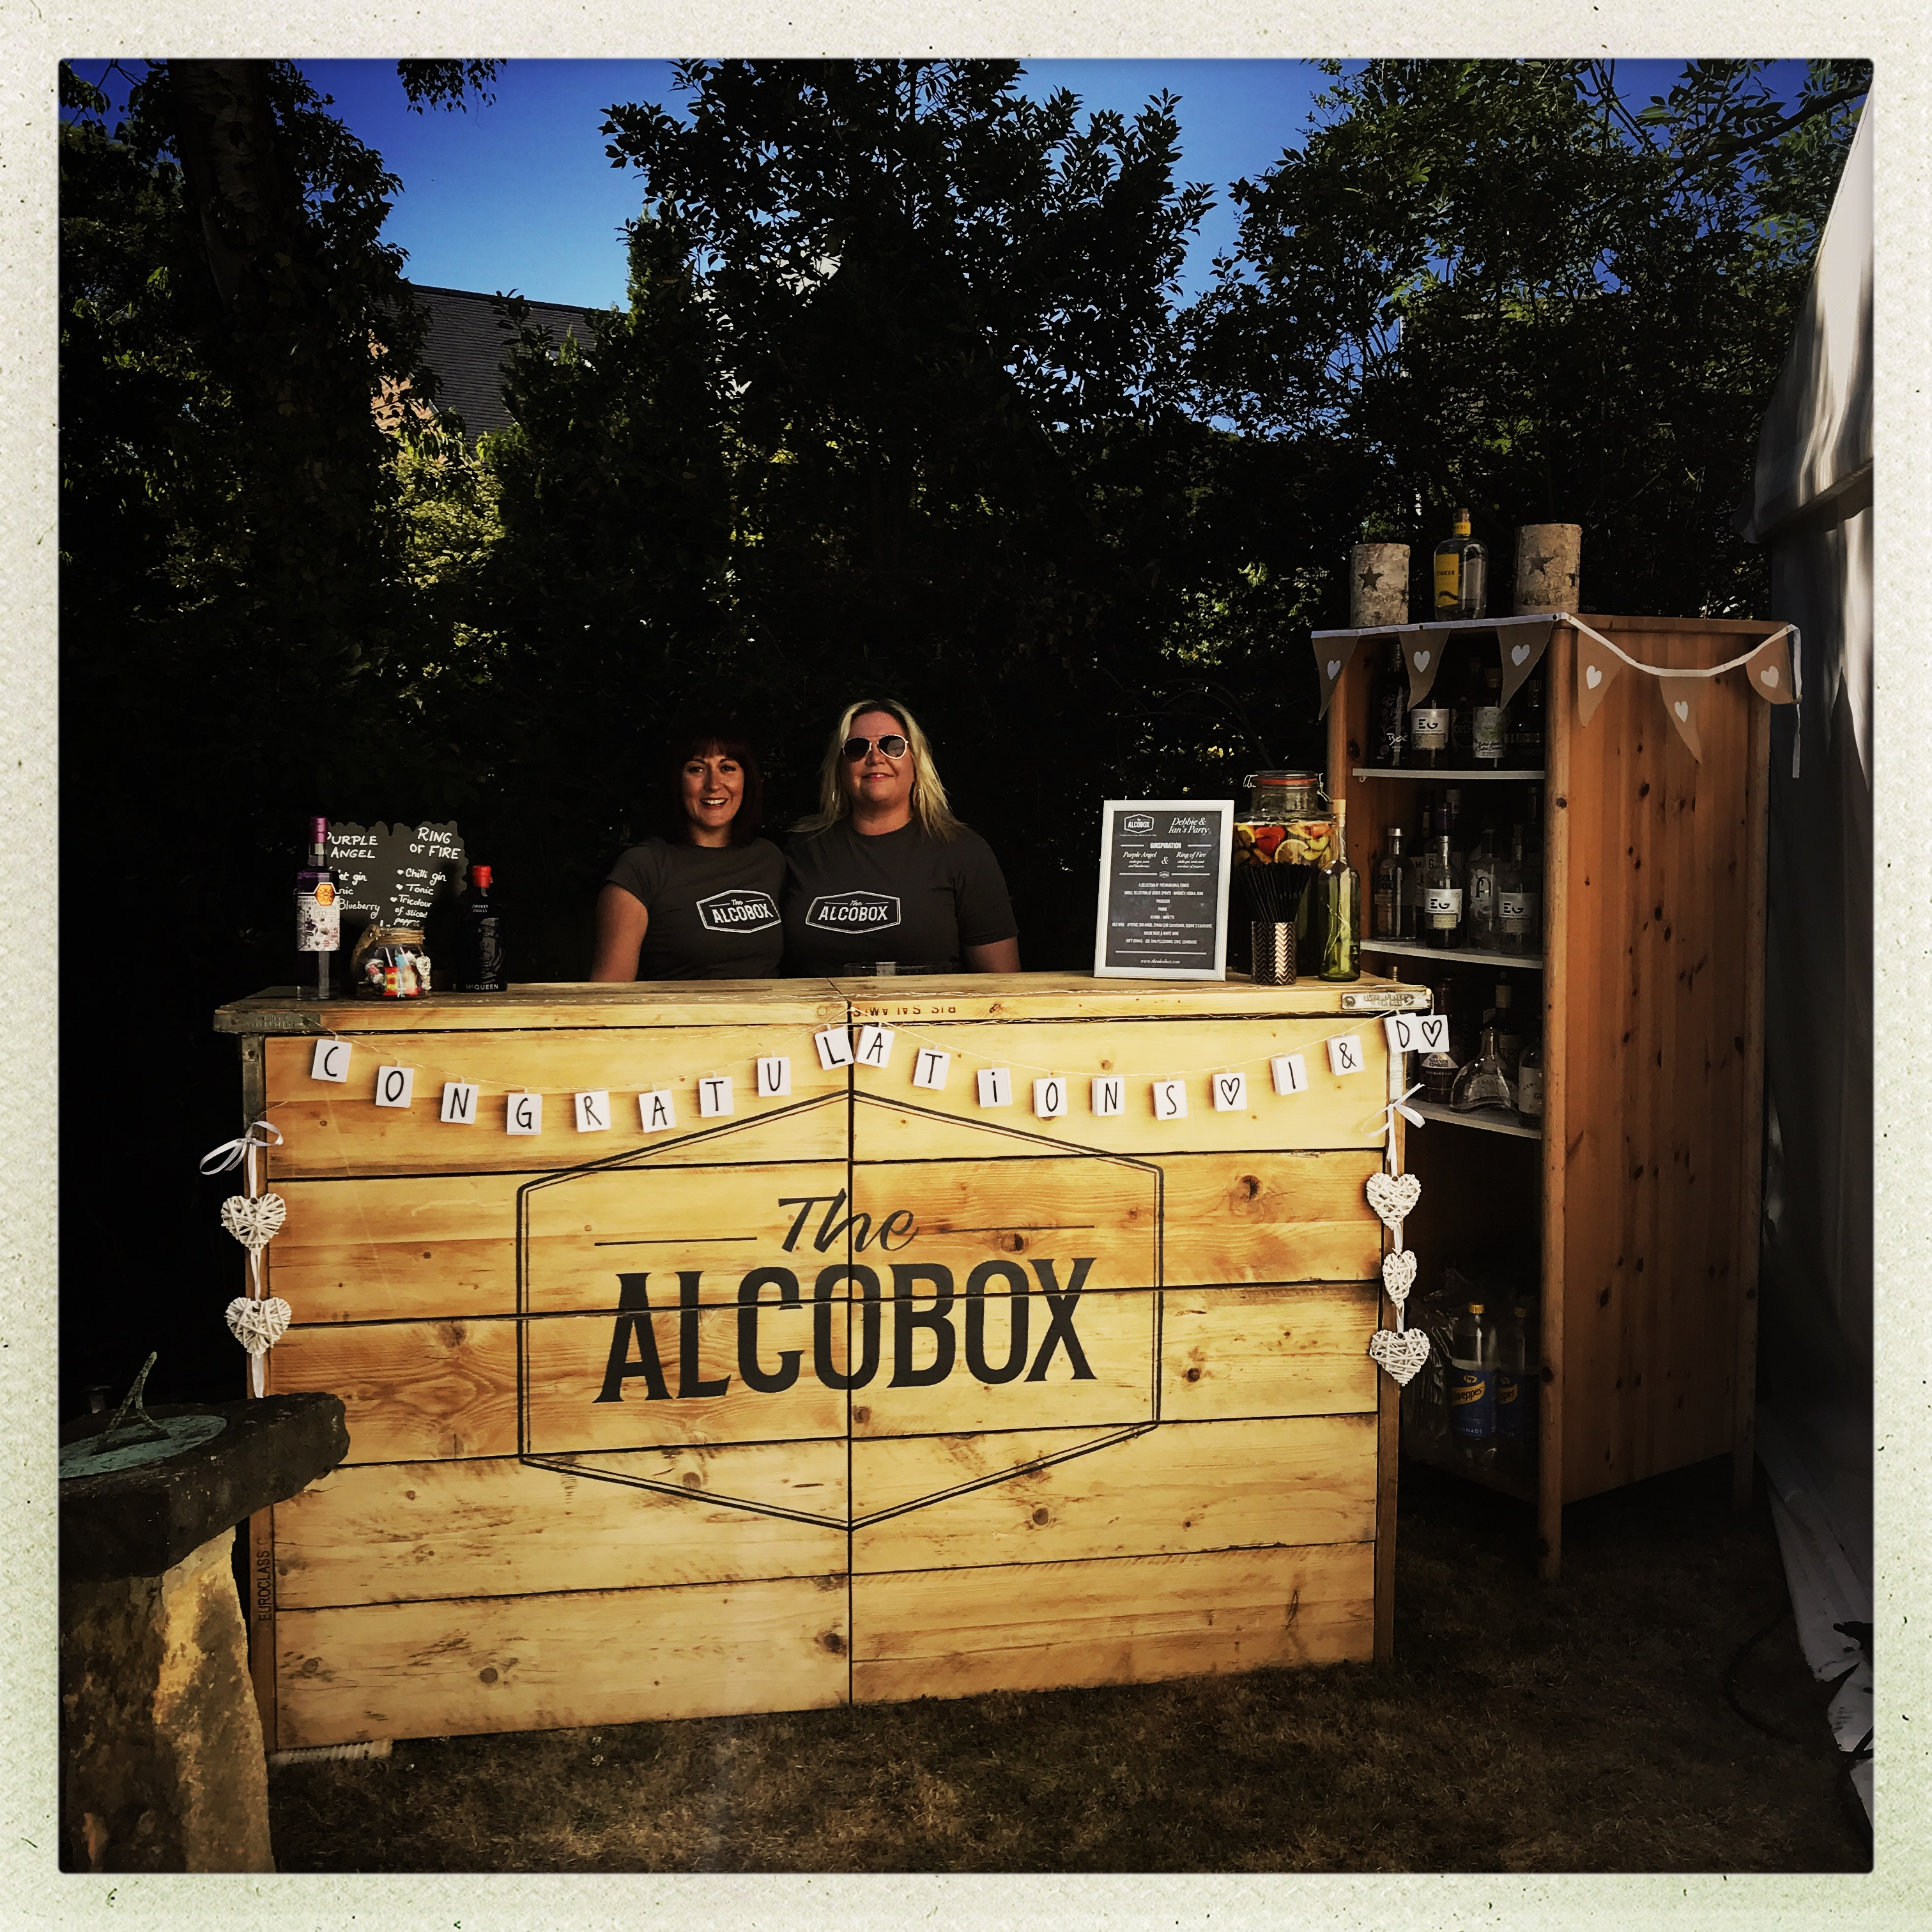 Mobile pop-up bar at an AlcoBox summer garden party.